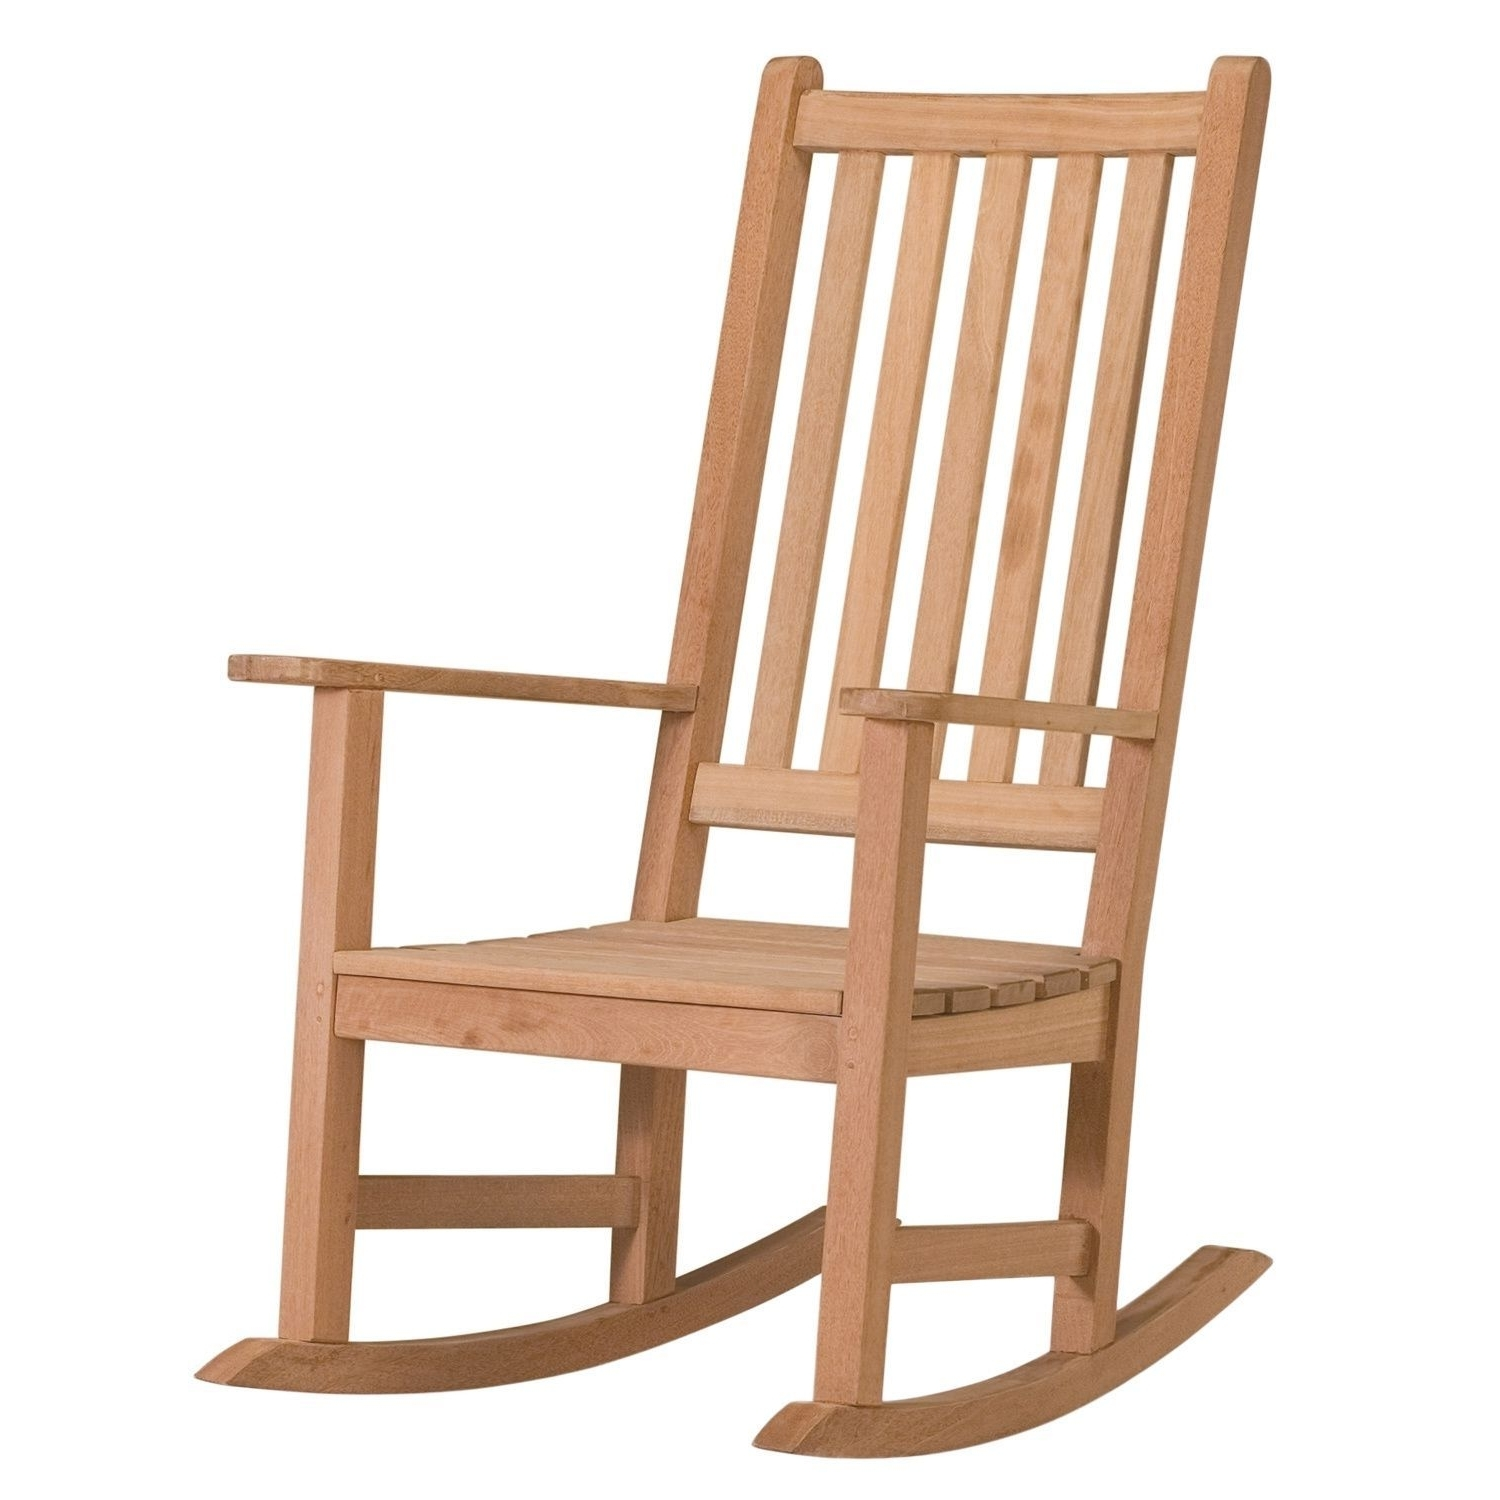 Most Popular Rocking Chairs For Garden With Regard To Oxford Garden Franklin Rocking Chair (Natural), Brown, Size Single (View 8 of 15)